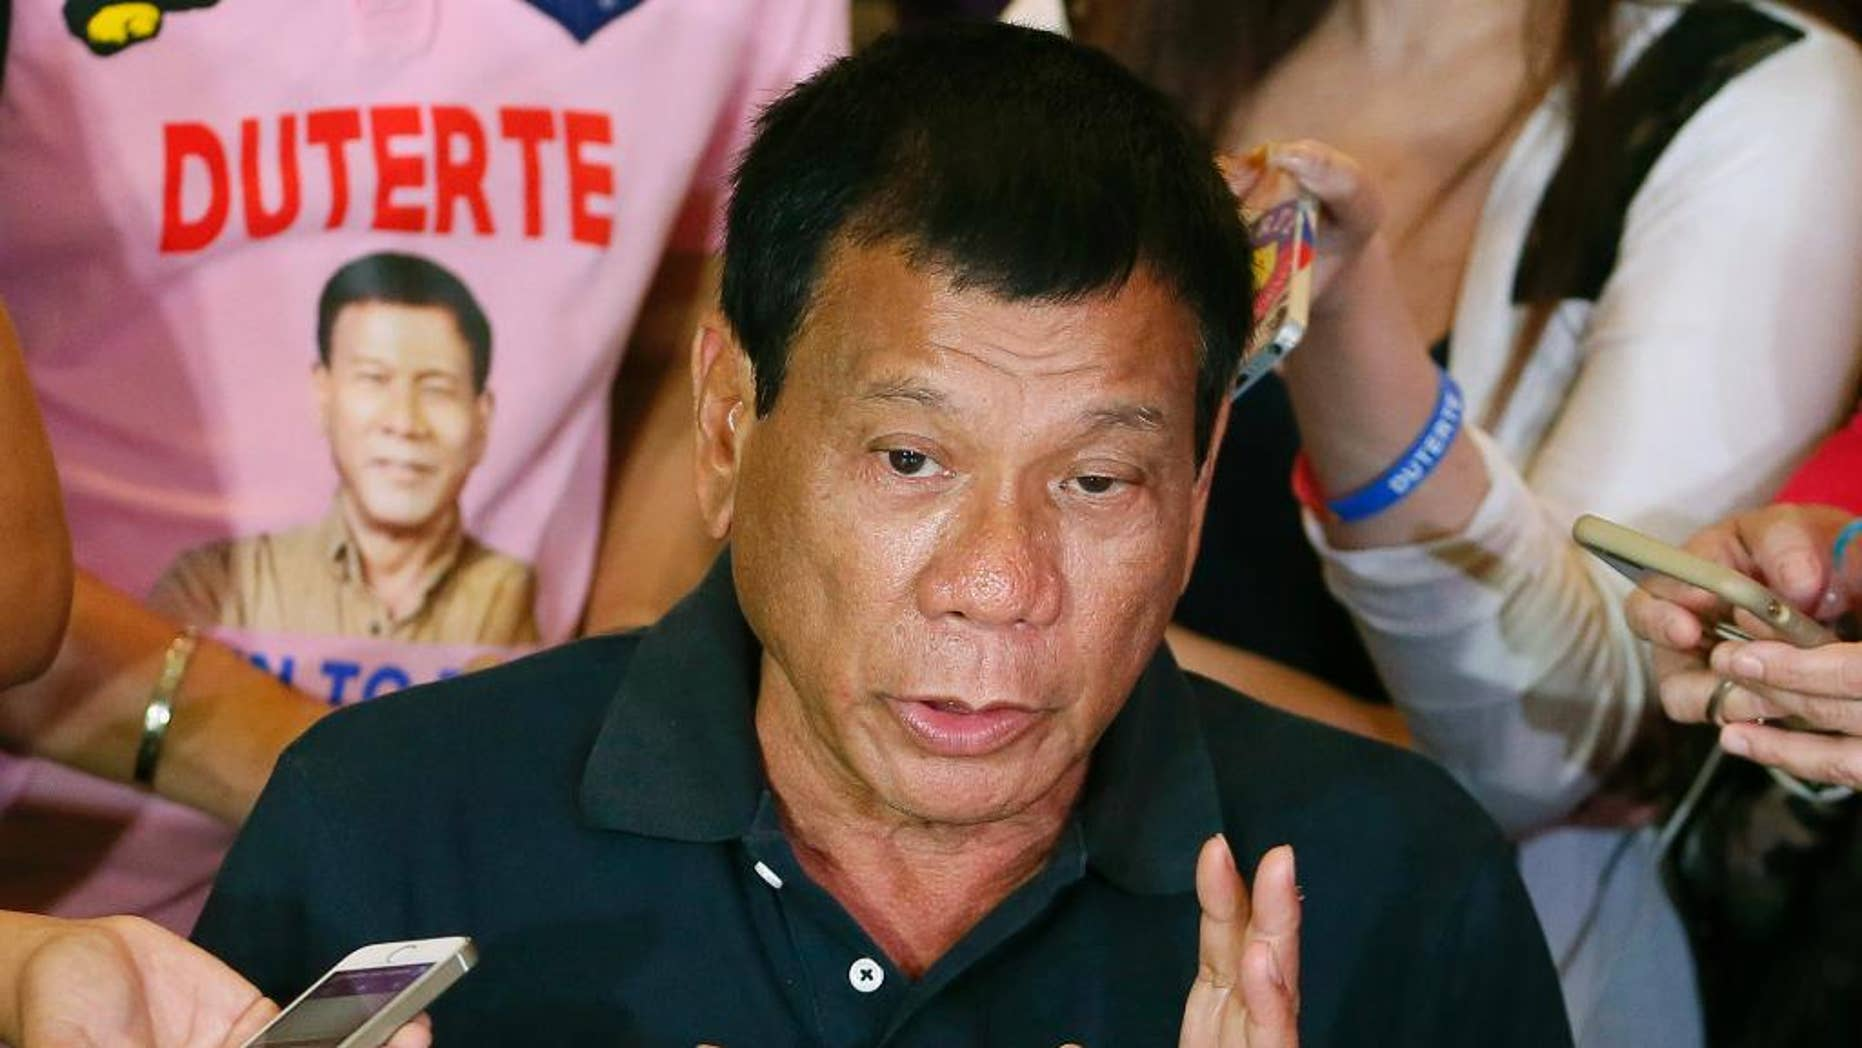 April 29, 2016: Presidential candidate Rodrigo Duterte answers questions from the media in Manila, Philippines.